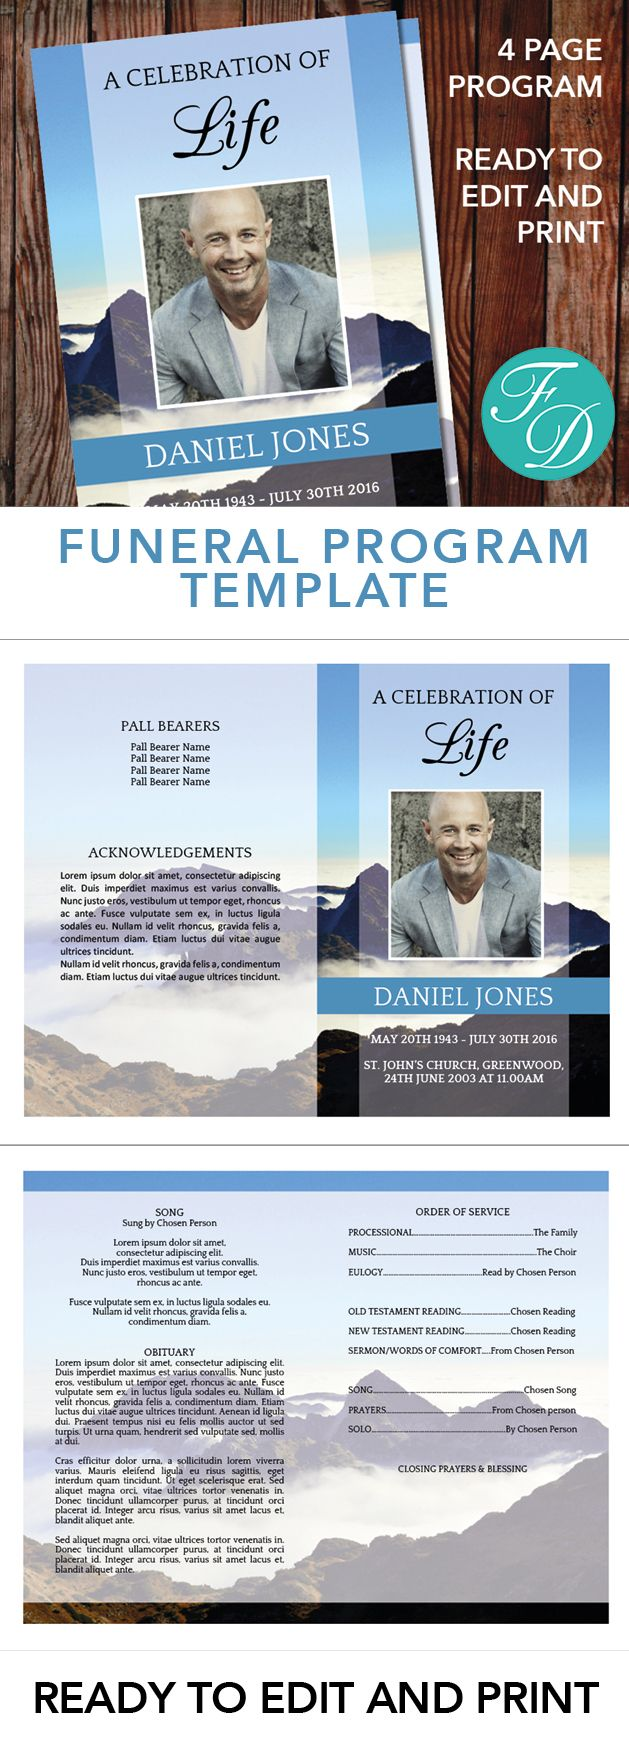 Mountain Printable Funeral program ready to edit & print. Simply purchase your funeral templates, download, edit with Microsoft Word and print. #obituarytemplate #memorialprogram #funeralprograms #funeraltemplate #printableprogram #celebrationoflife #funeralprogamtemplates